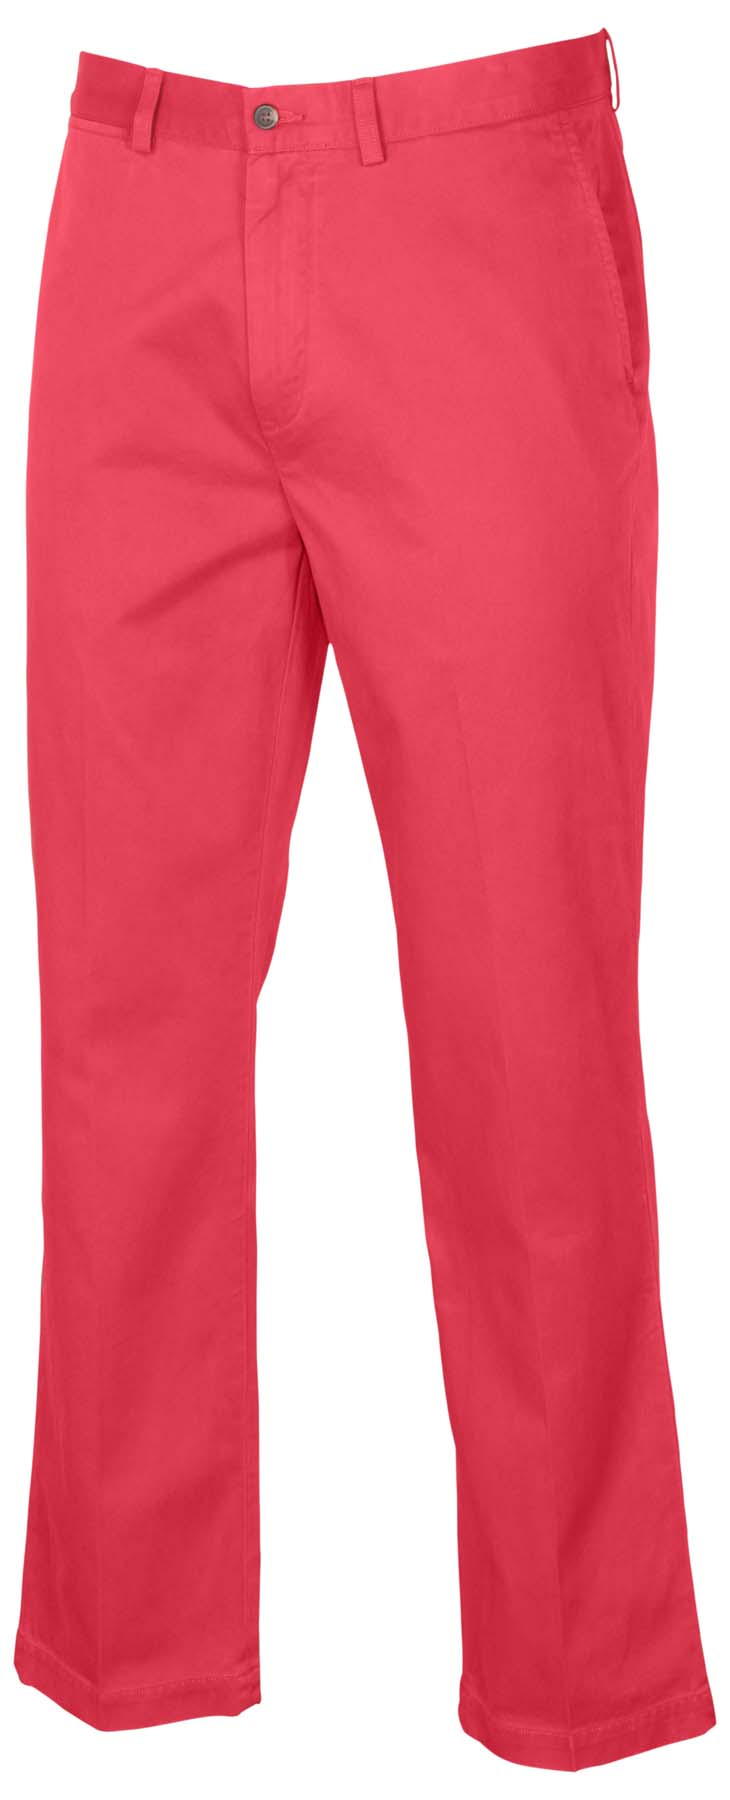 95cb75029e84 Polo Ralph Lauren Men s Stretch Classic Fit Chino Pants-Nantkt Red ...